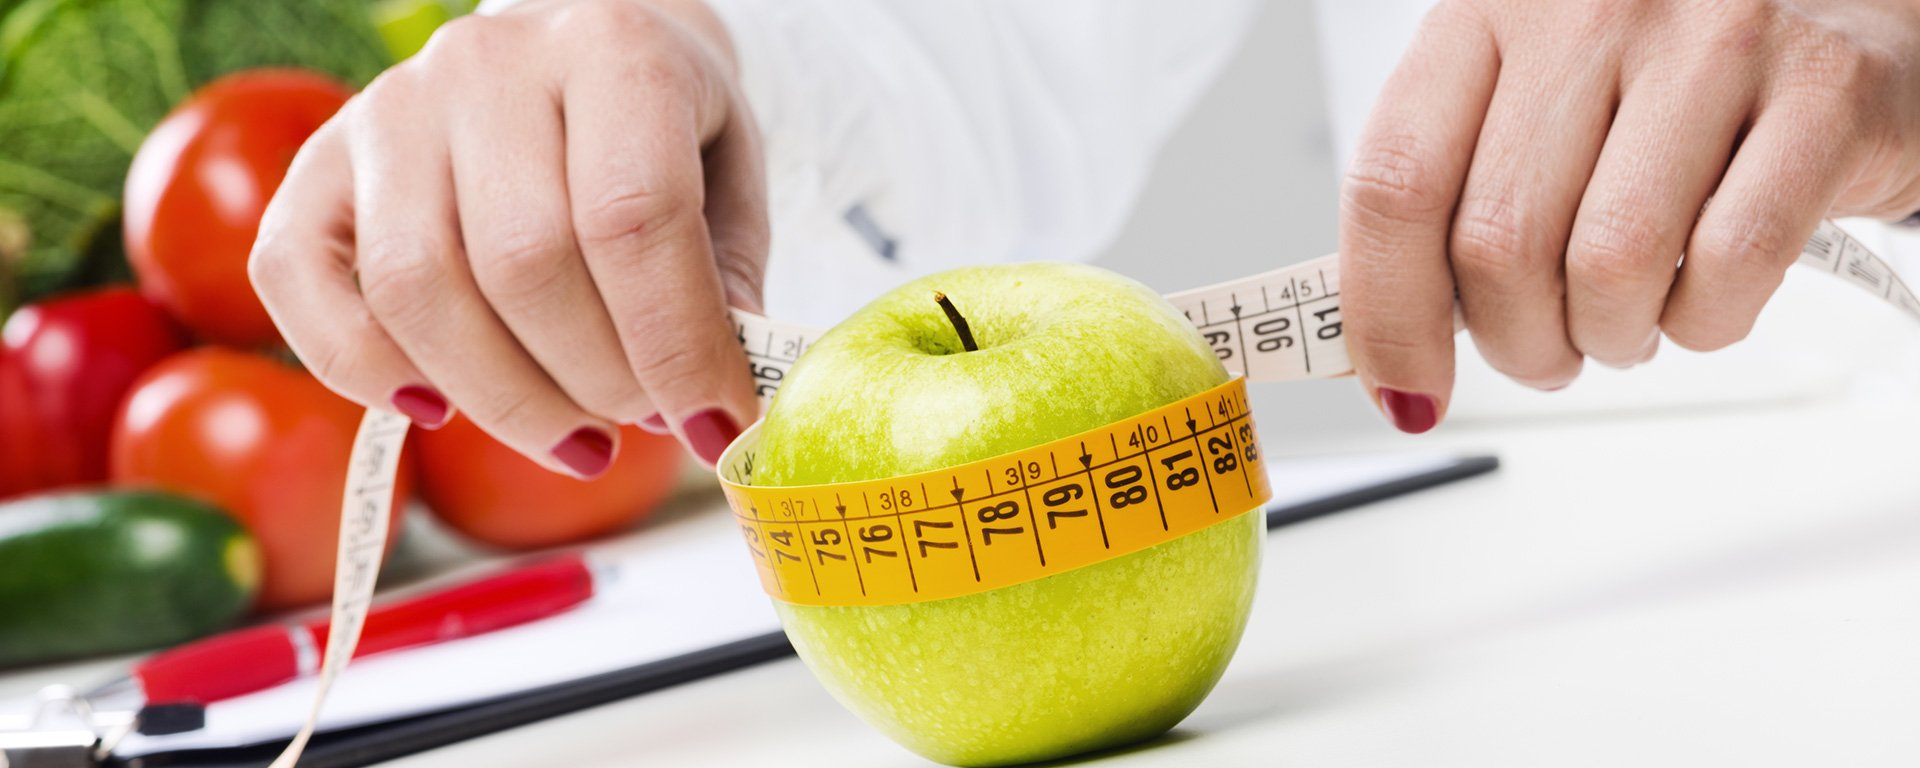 Professional educatiing the customer about the nutrition element